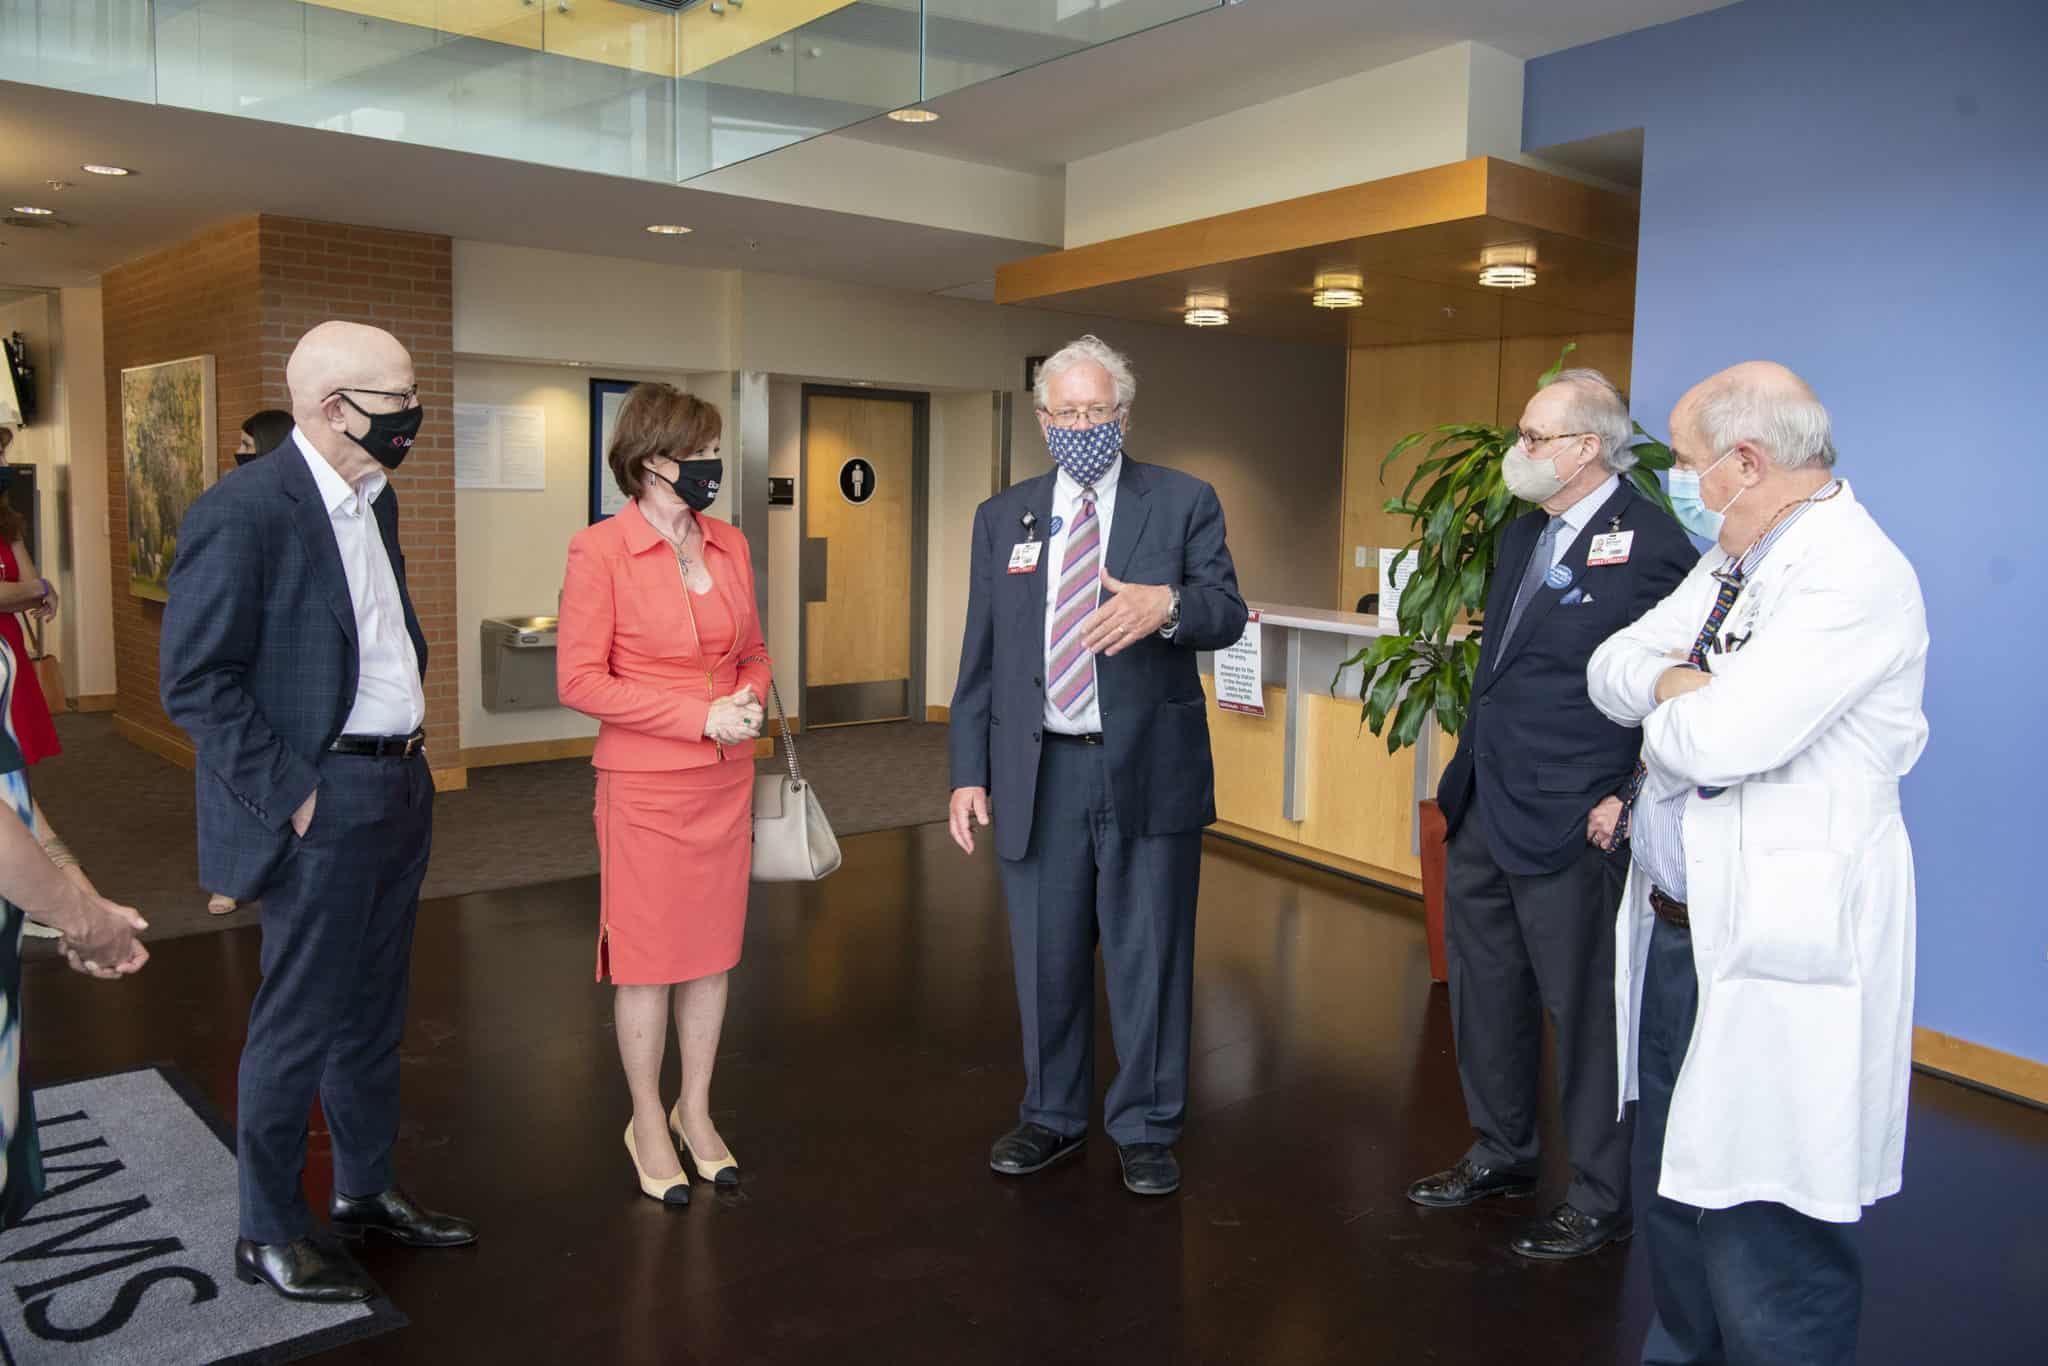 George and Linda Gleason (at left) chat with G. Richard Smith, M.D. (center), David Ashmore and R. Lee Archer, M.D., prior to the presentation of a $100,000 check to be split equally between the Psychiatric Research Institute and Department of Neurology.